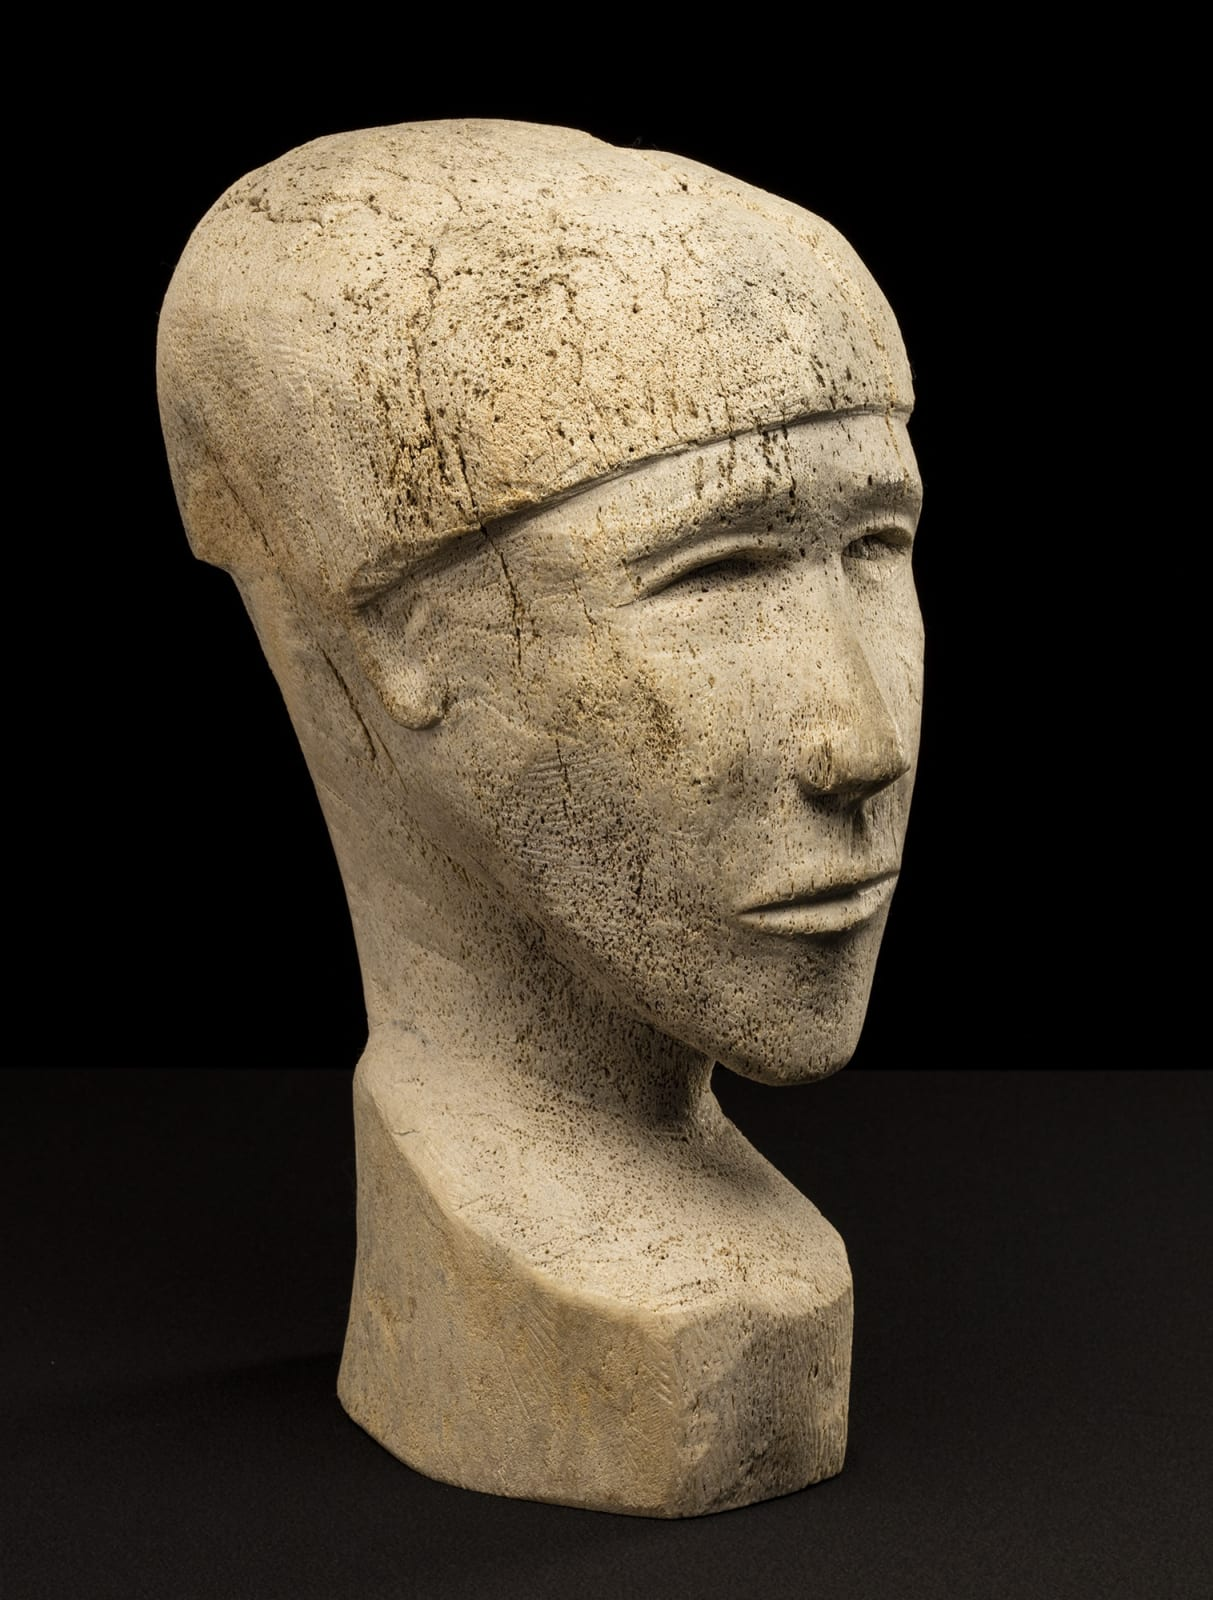 Lot 108 PAULOOSIE KAKEE (1933-) PANNIQTUUQ (PANGNIRTUNG) Portrait Bust of a Young Man, 1968 whale bone, 16 x 6.5 x 8.75 in (40.6 x 16.5 x 22.2 cm) Estimate: $1,000⁠⁠⁠— $1,500